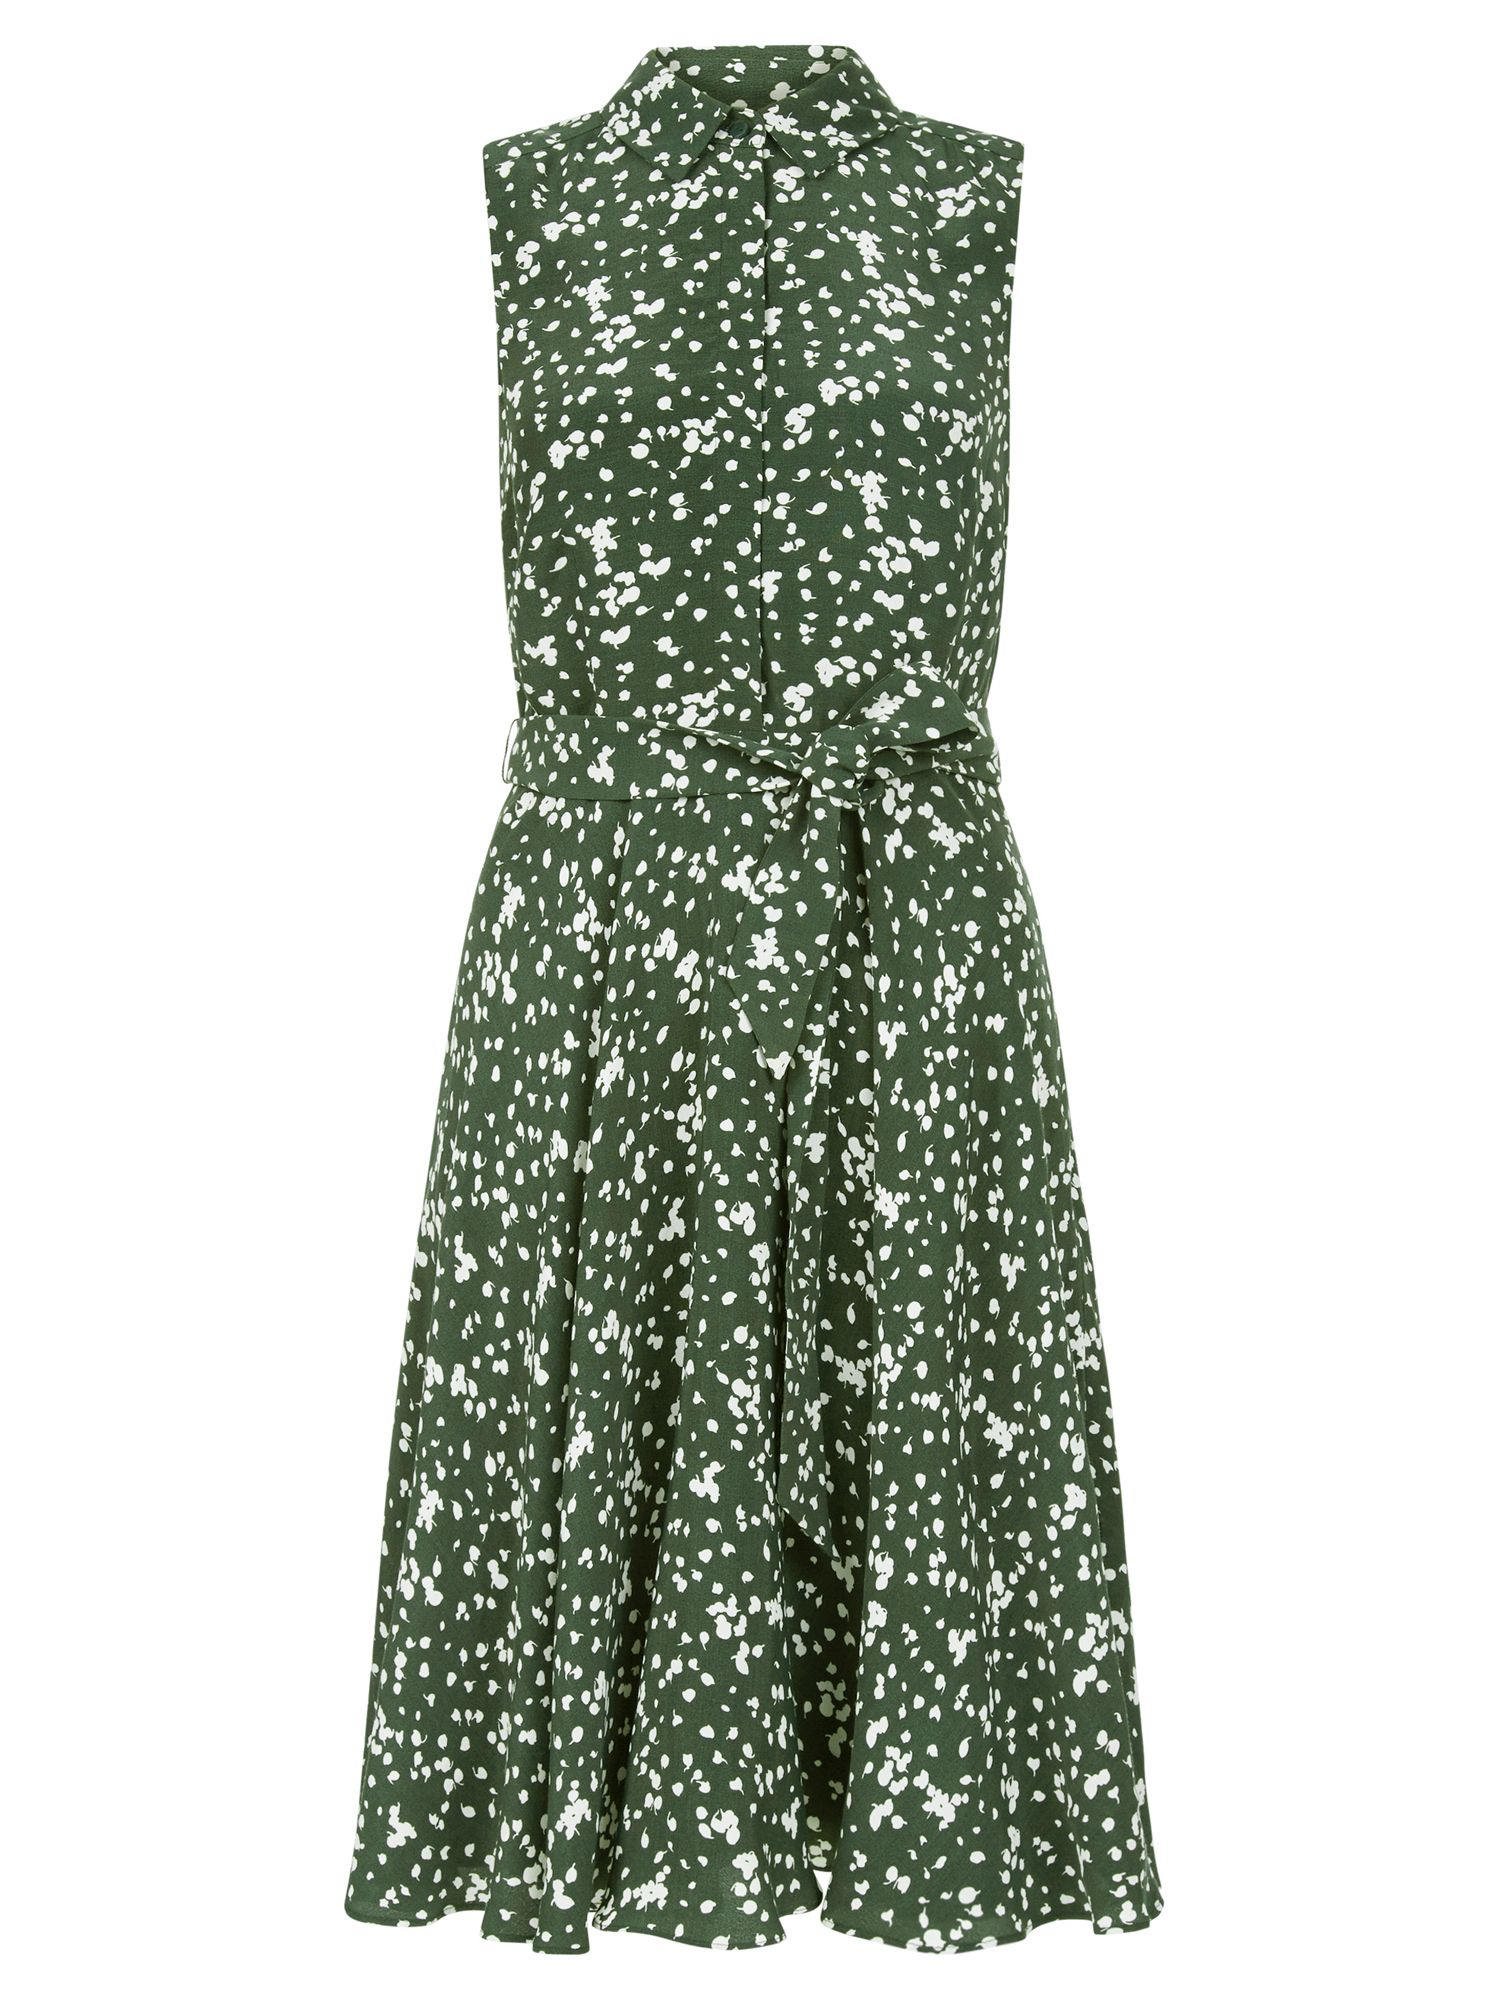 Hobbs Belinda Dress, Green